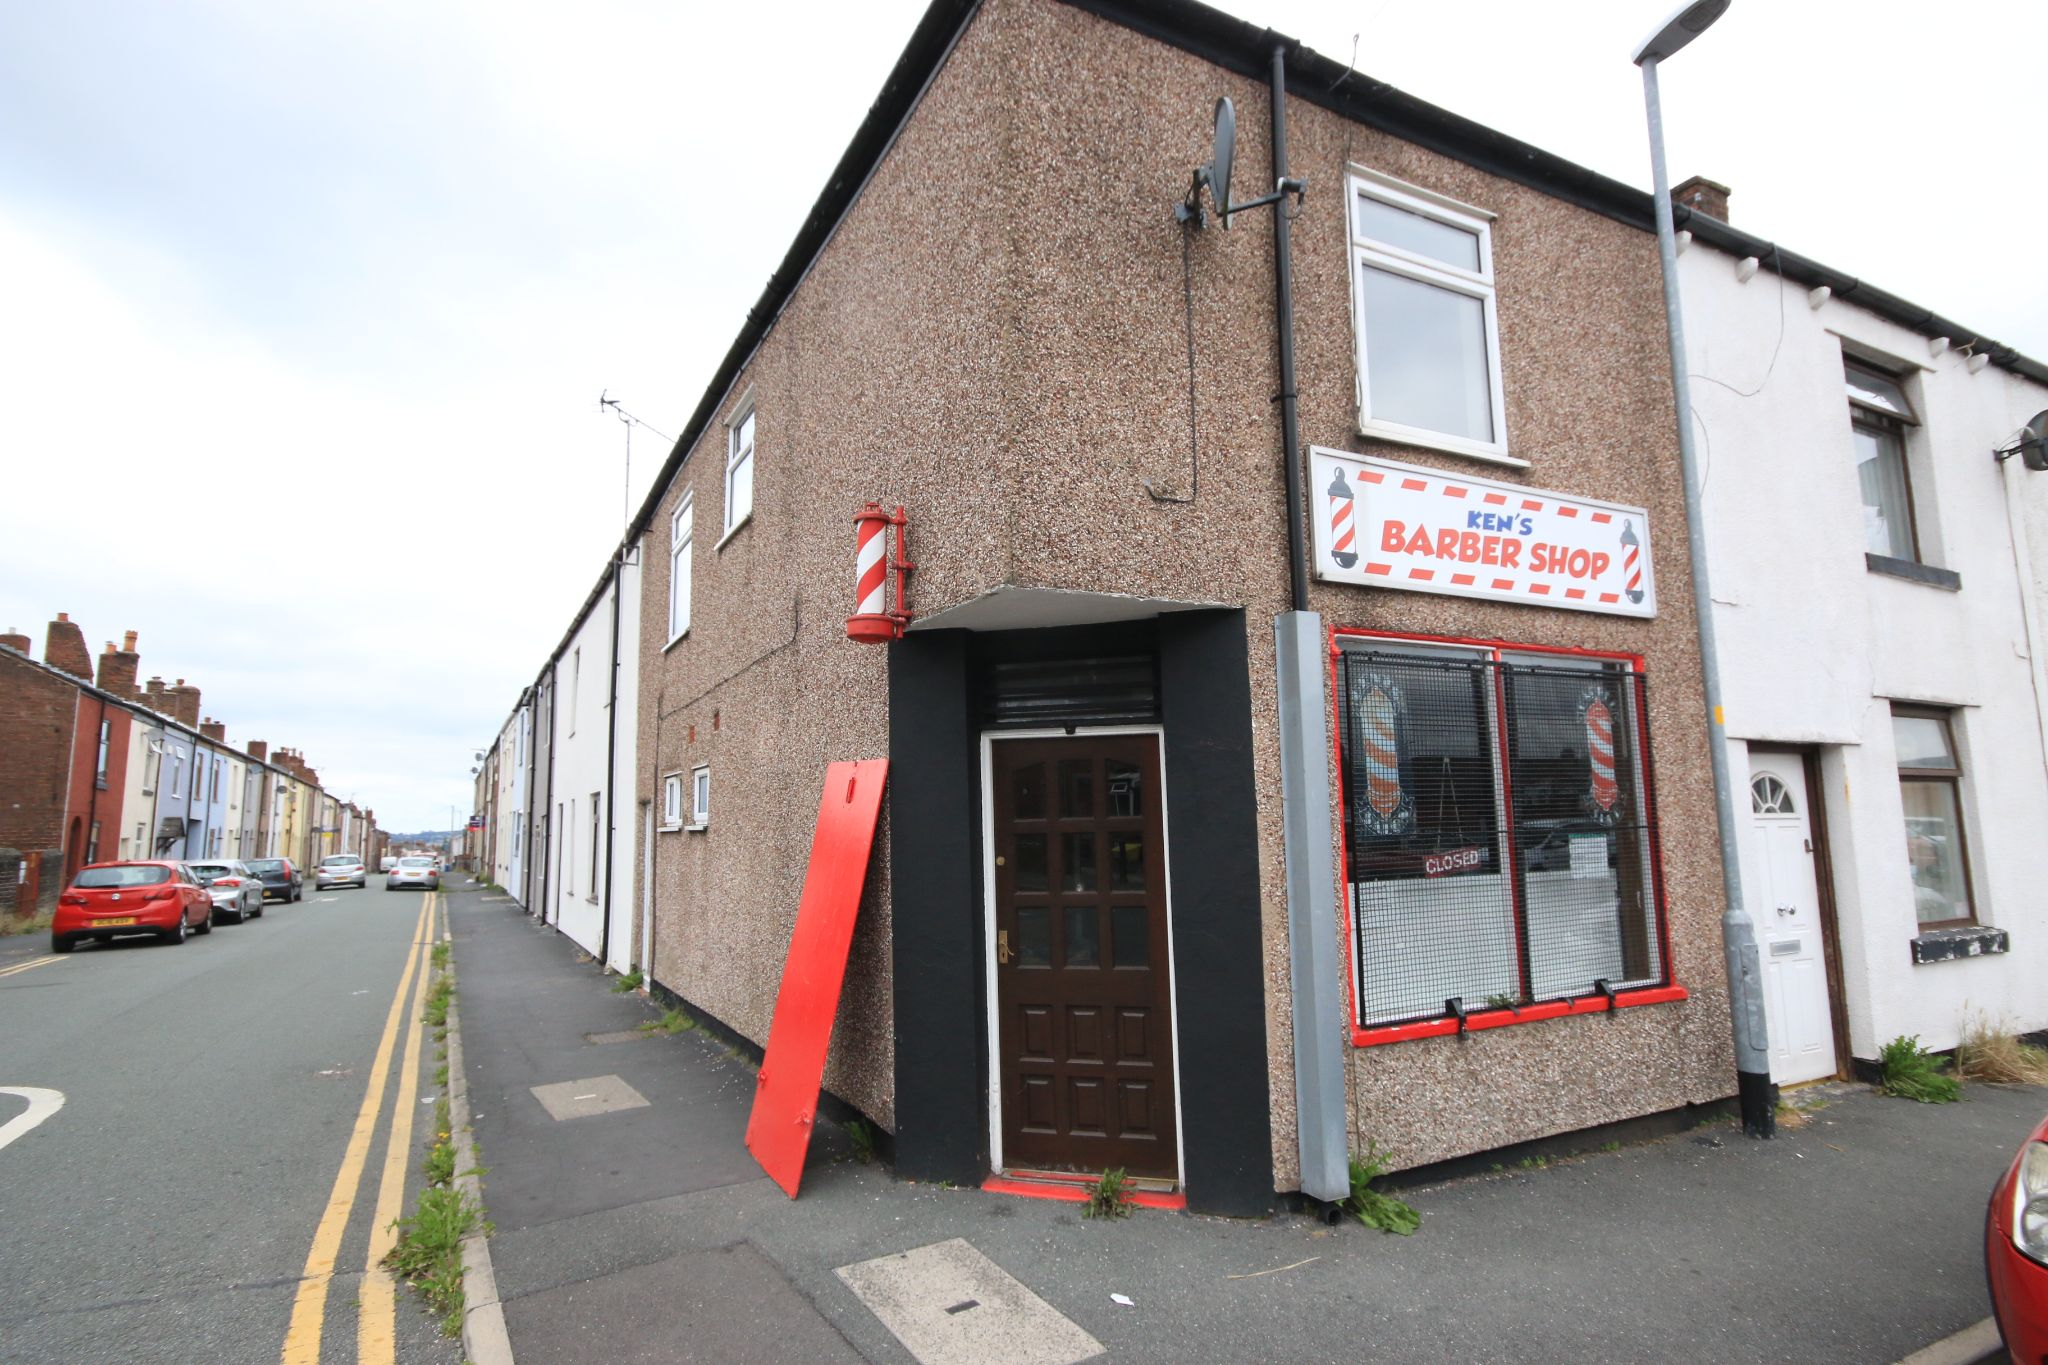 Empty Retail Premises For Sale in Wigan - Photograph 1.